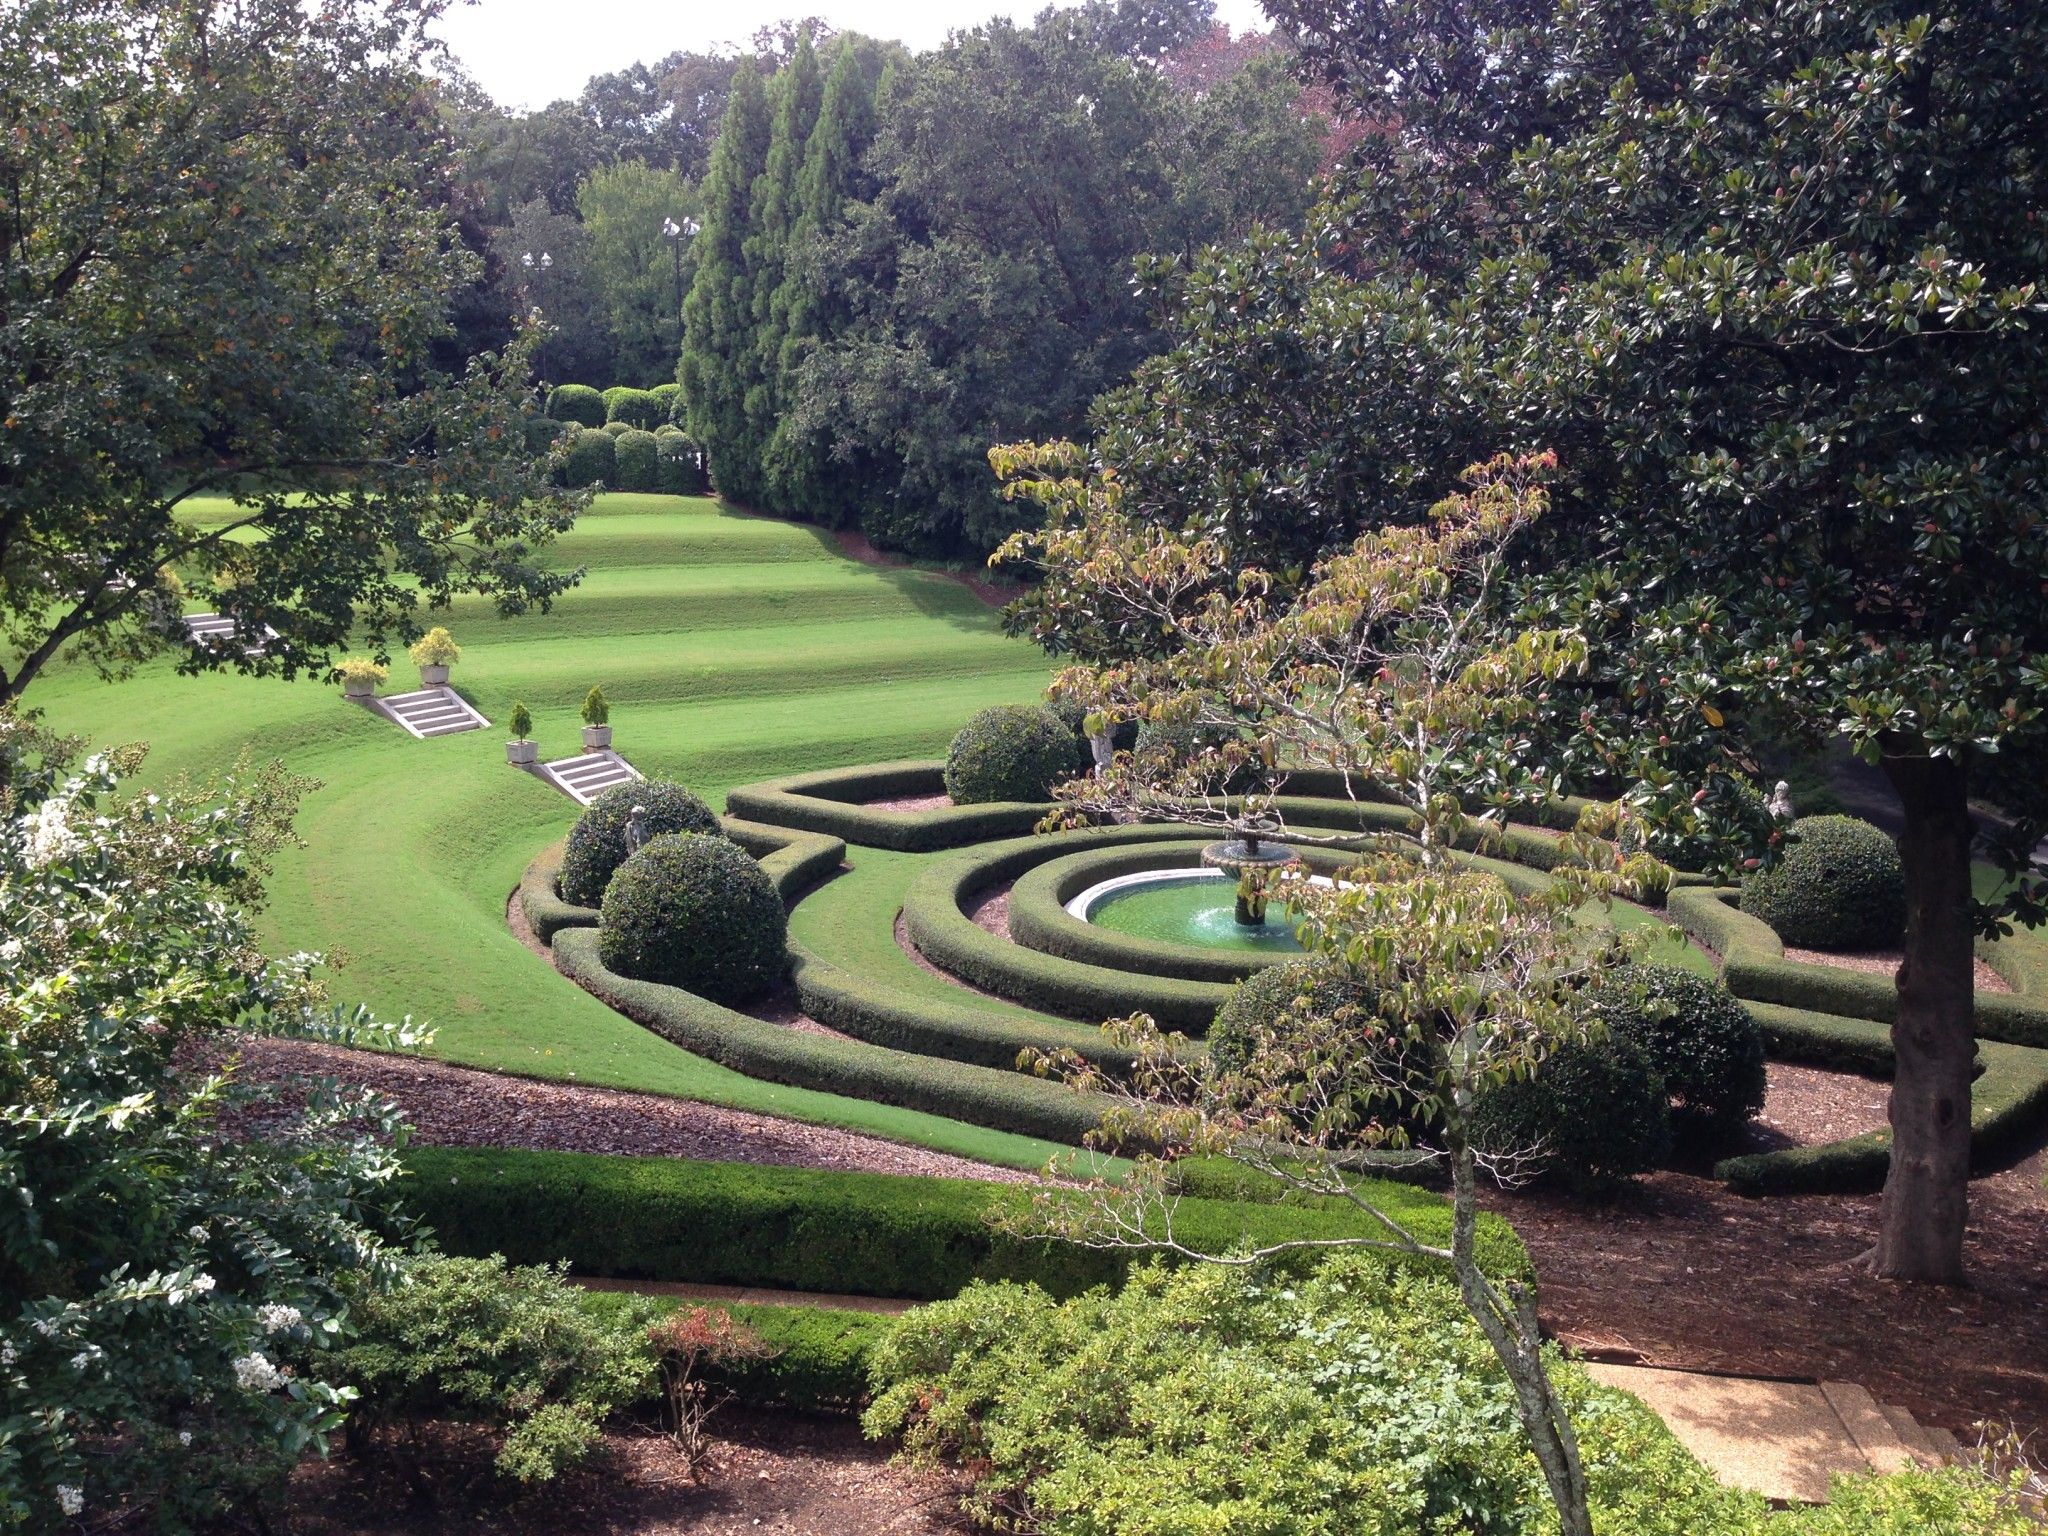 Grounds at the Governor's Mansion. Photo by Christopher Oquendo